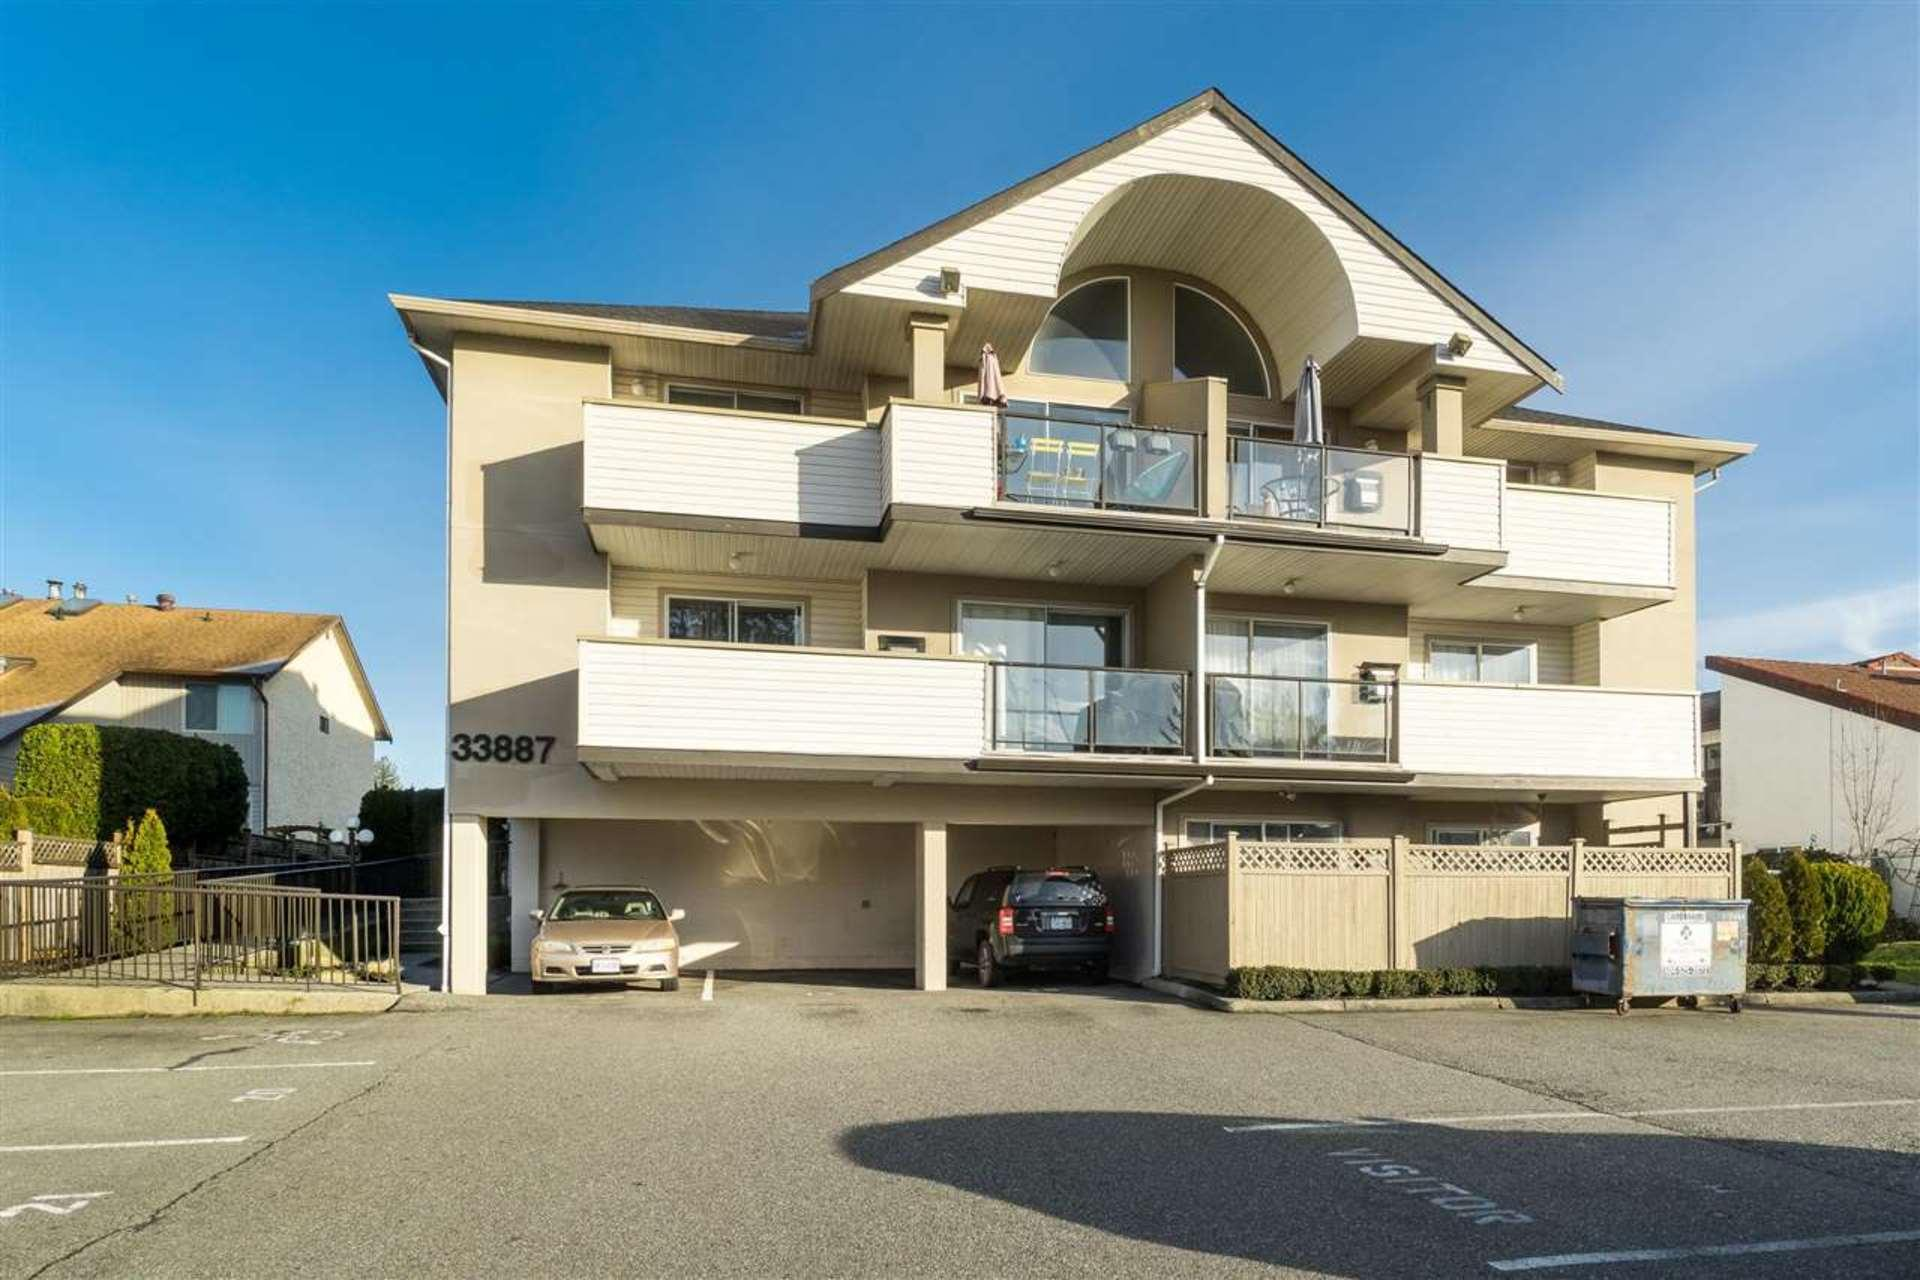 303 - 33887 Marshall Road, Central Abbotsford, Abbotsford